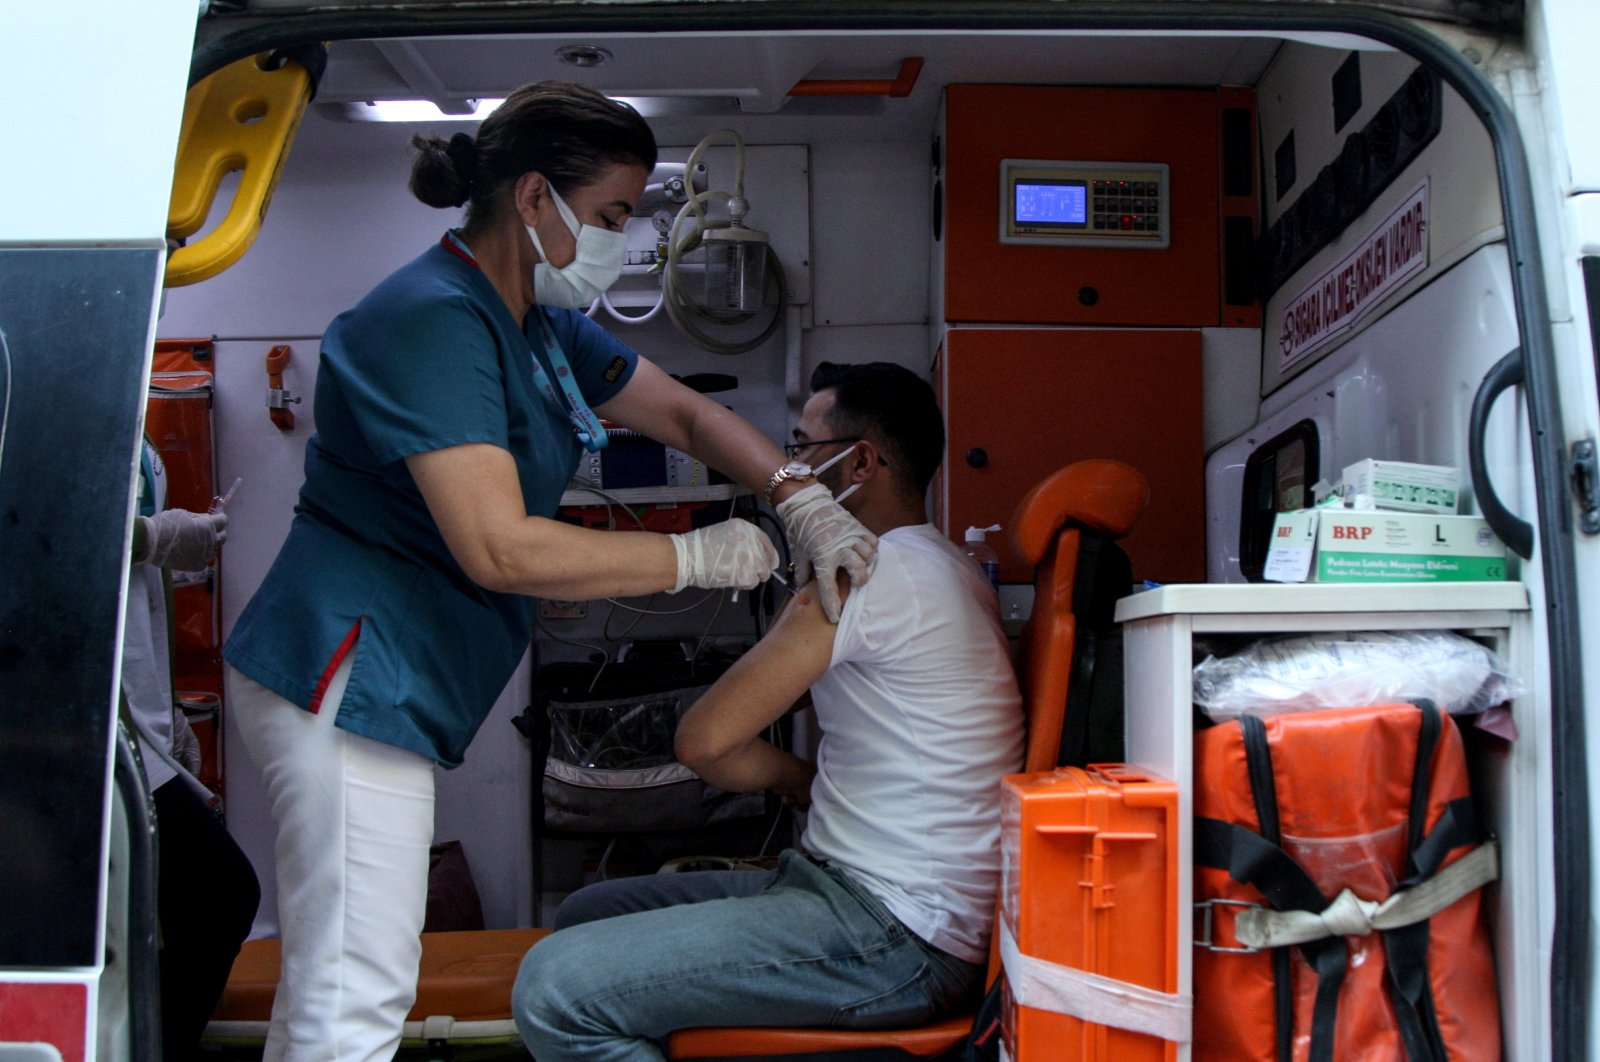 A man receives a dose of the Pfizer-BioNTech vaccine in an ambulance parked on a main street in Diyarbakır, southeastern Turkey, July 27, 2021. (REUTERS PHOTO)